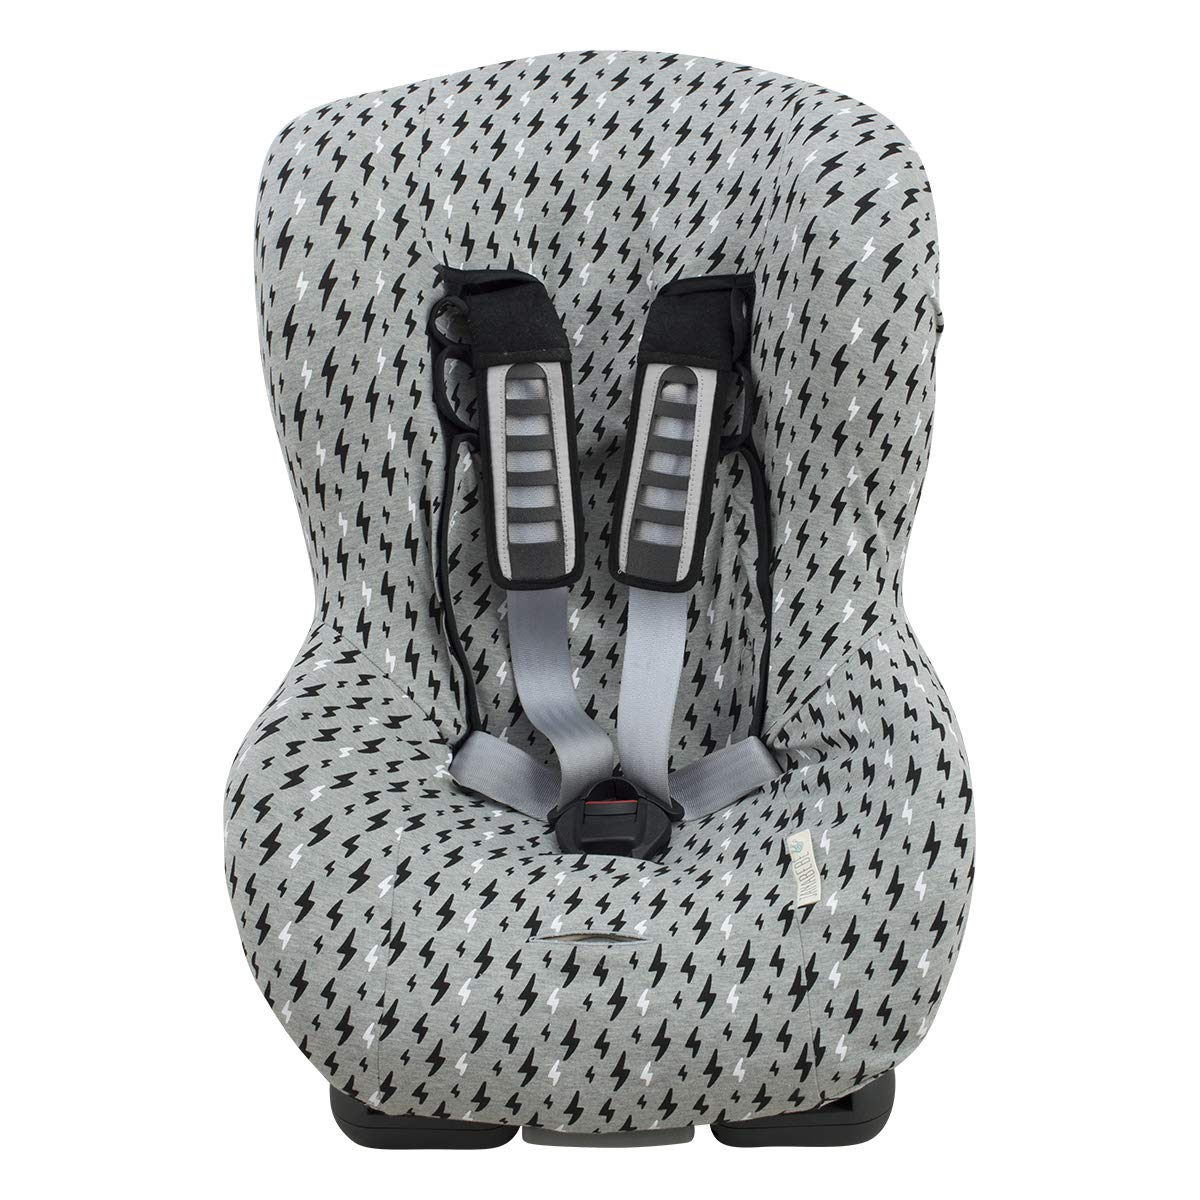 Universal Car Seat Cover Liner (Britax, Chicco, Mico and More) Black Rayo by JANABEBE